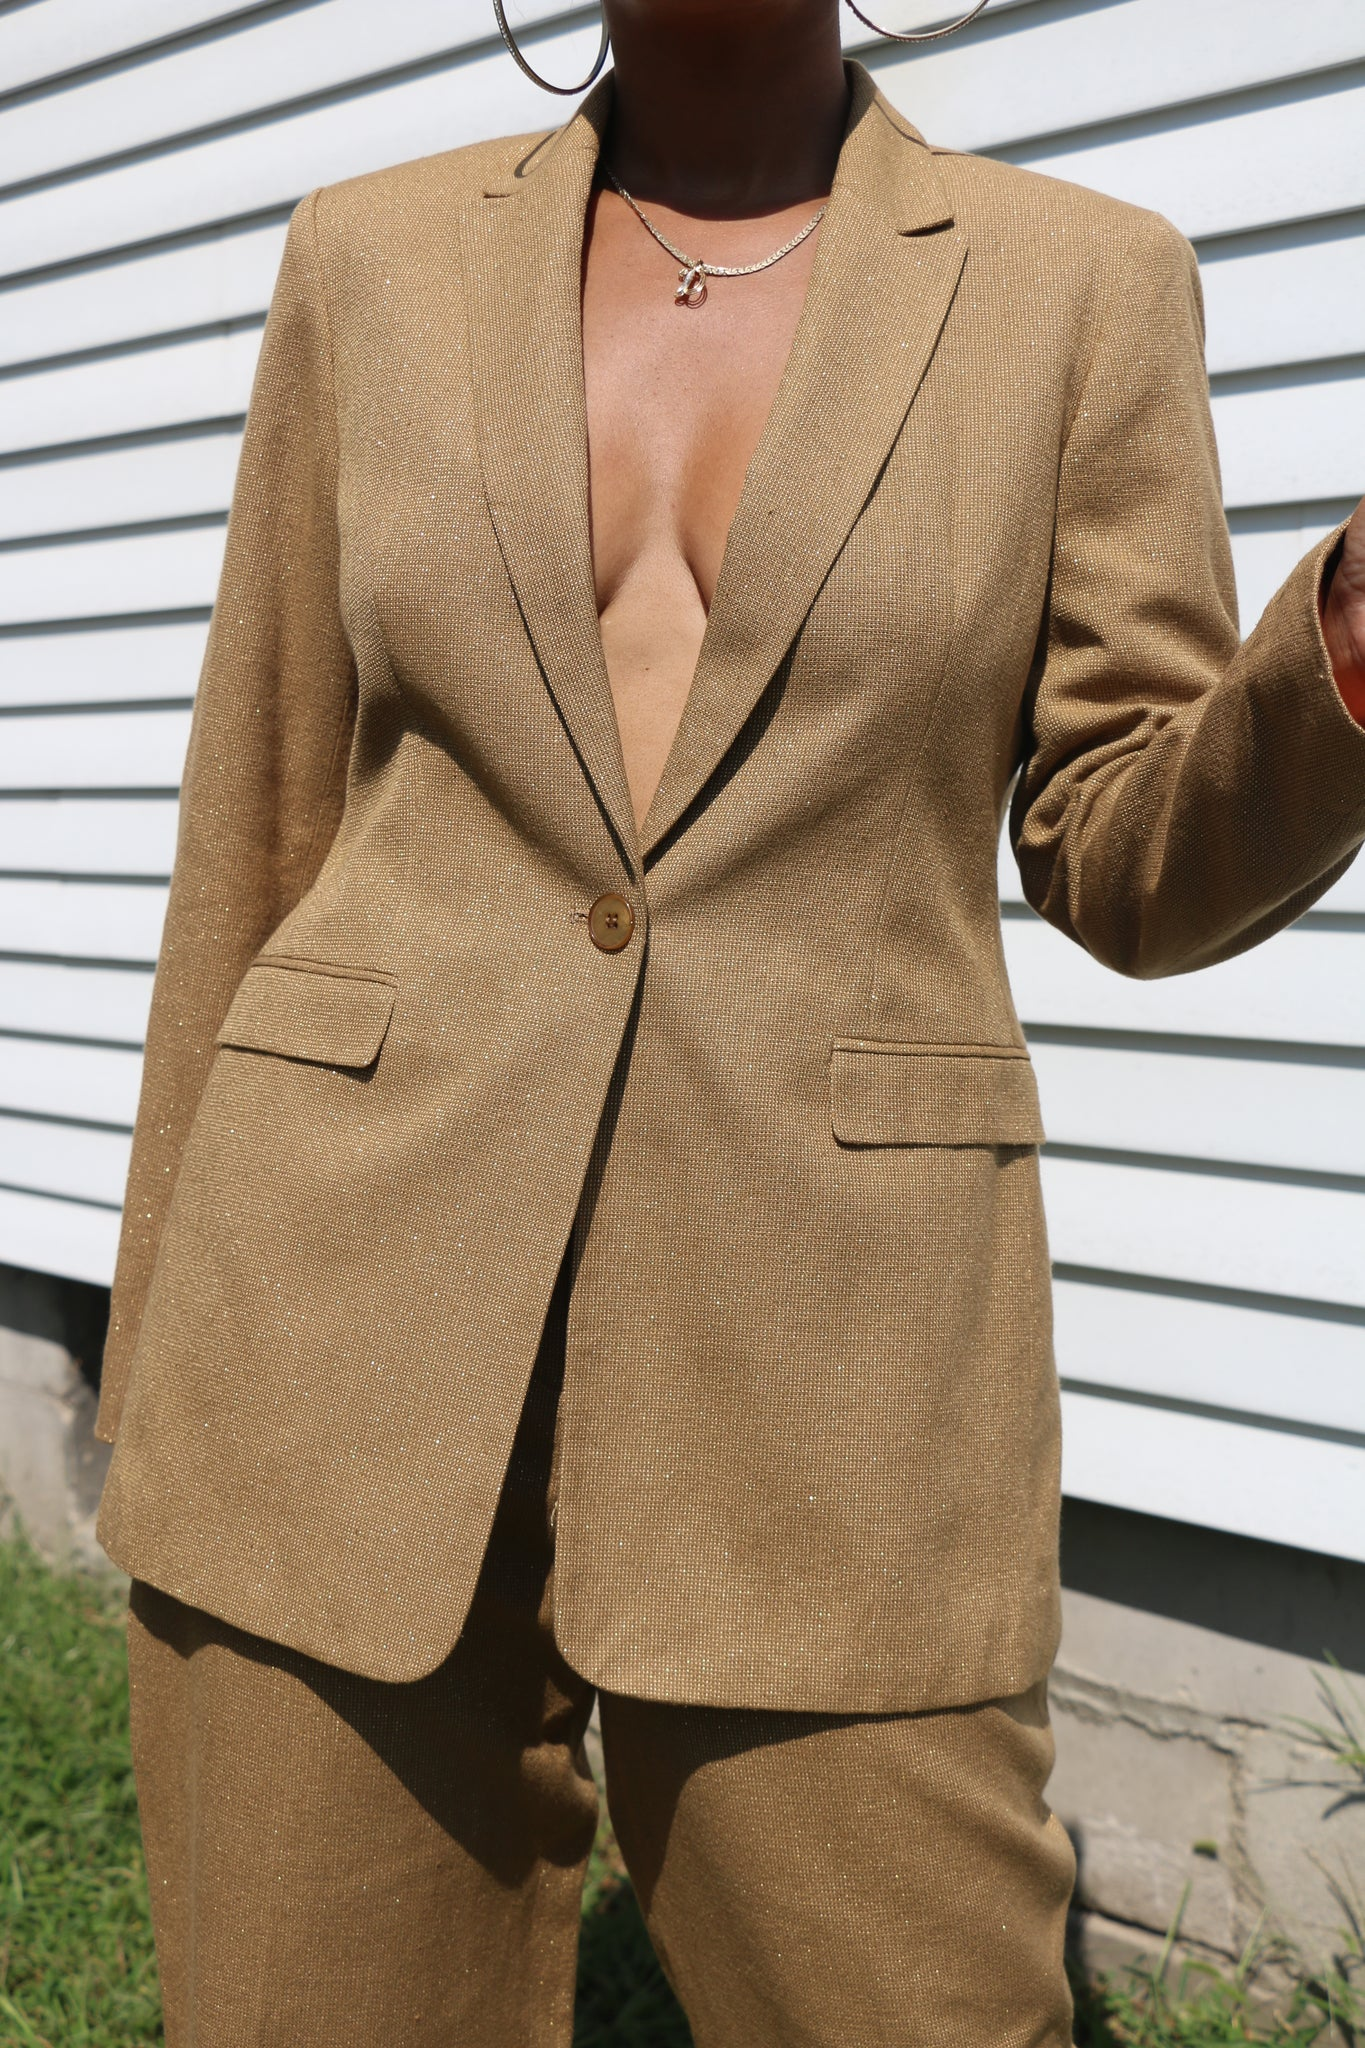 Golden Hour Suit (Brand New)